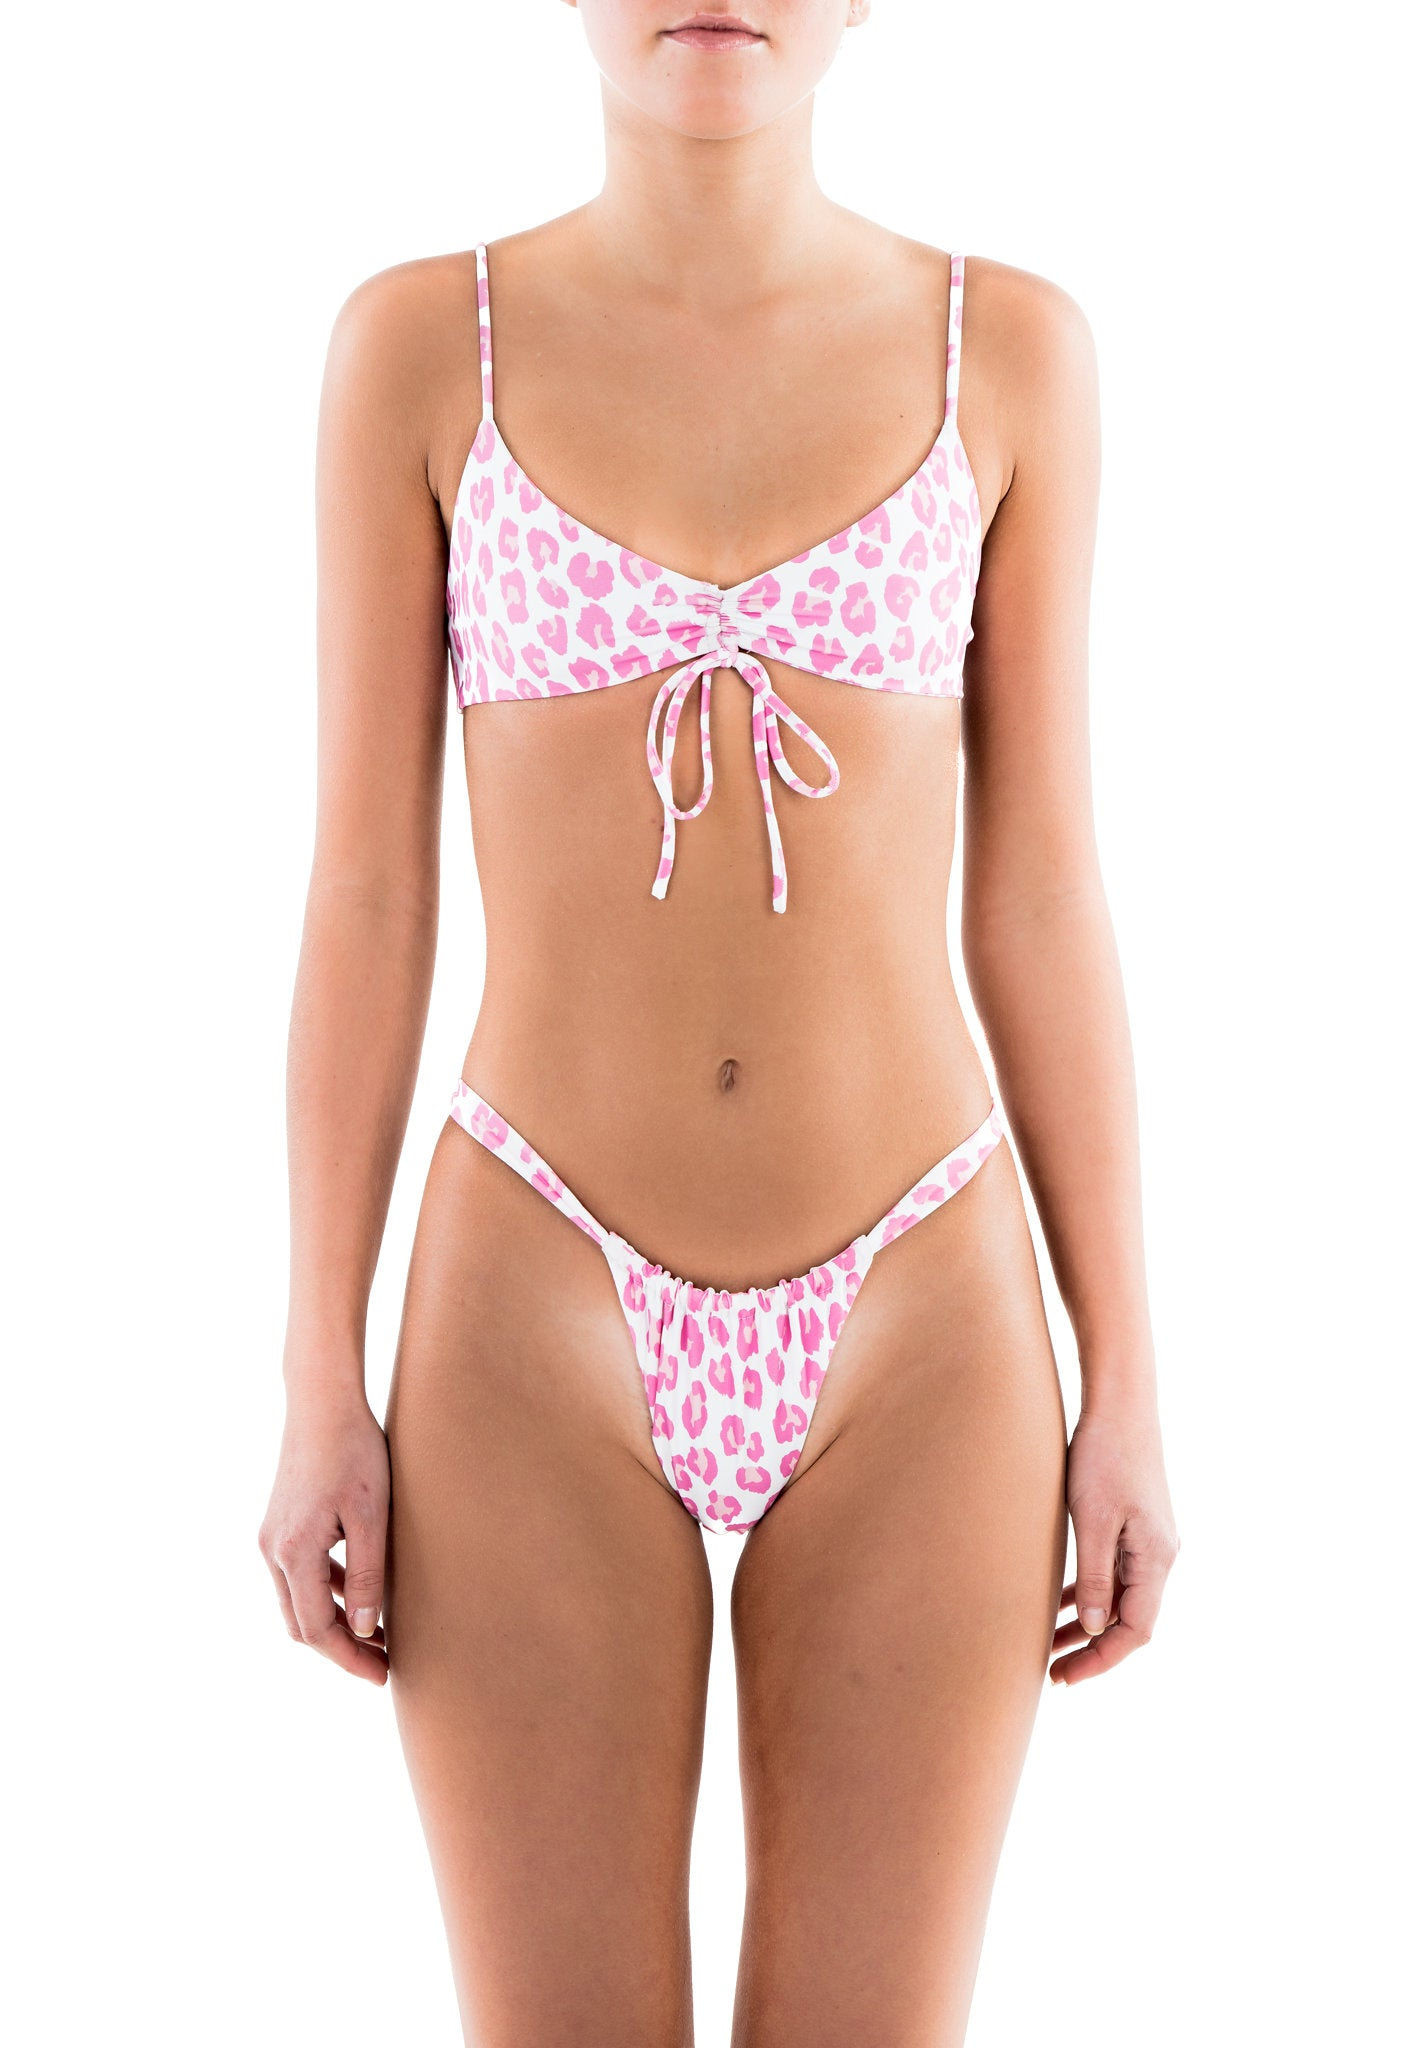 AMORE bottoms - pink leopard